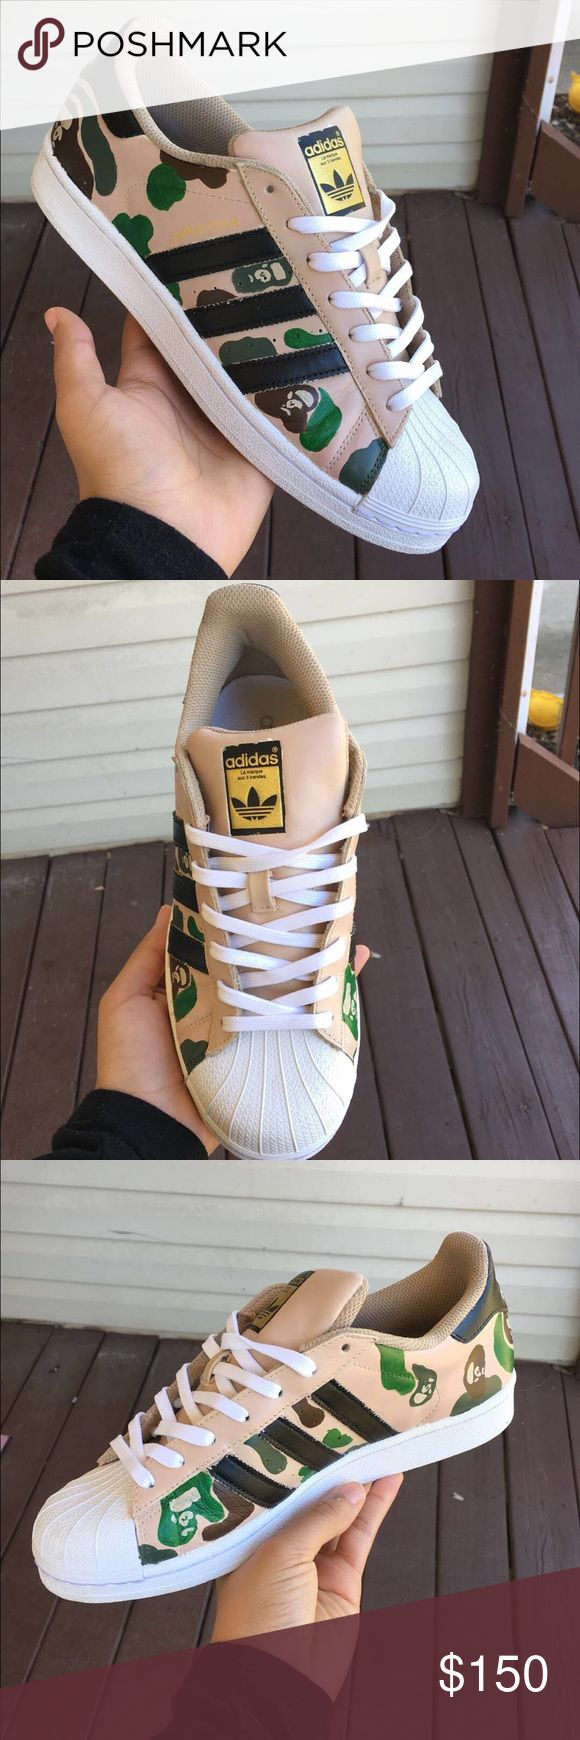 Adidas x Bape These are custom hand painted adidas superstars made by me. If you want a pair in your size feel free to let me know and I can do that for you. Adidas Shoes Sneakers